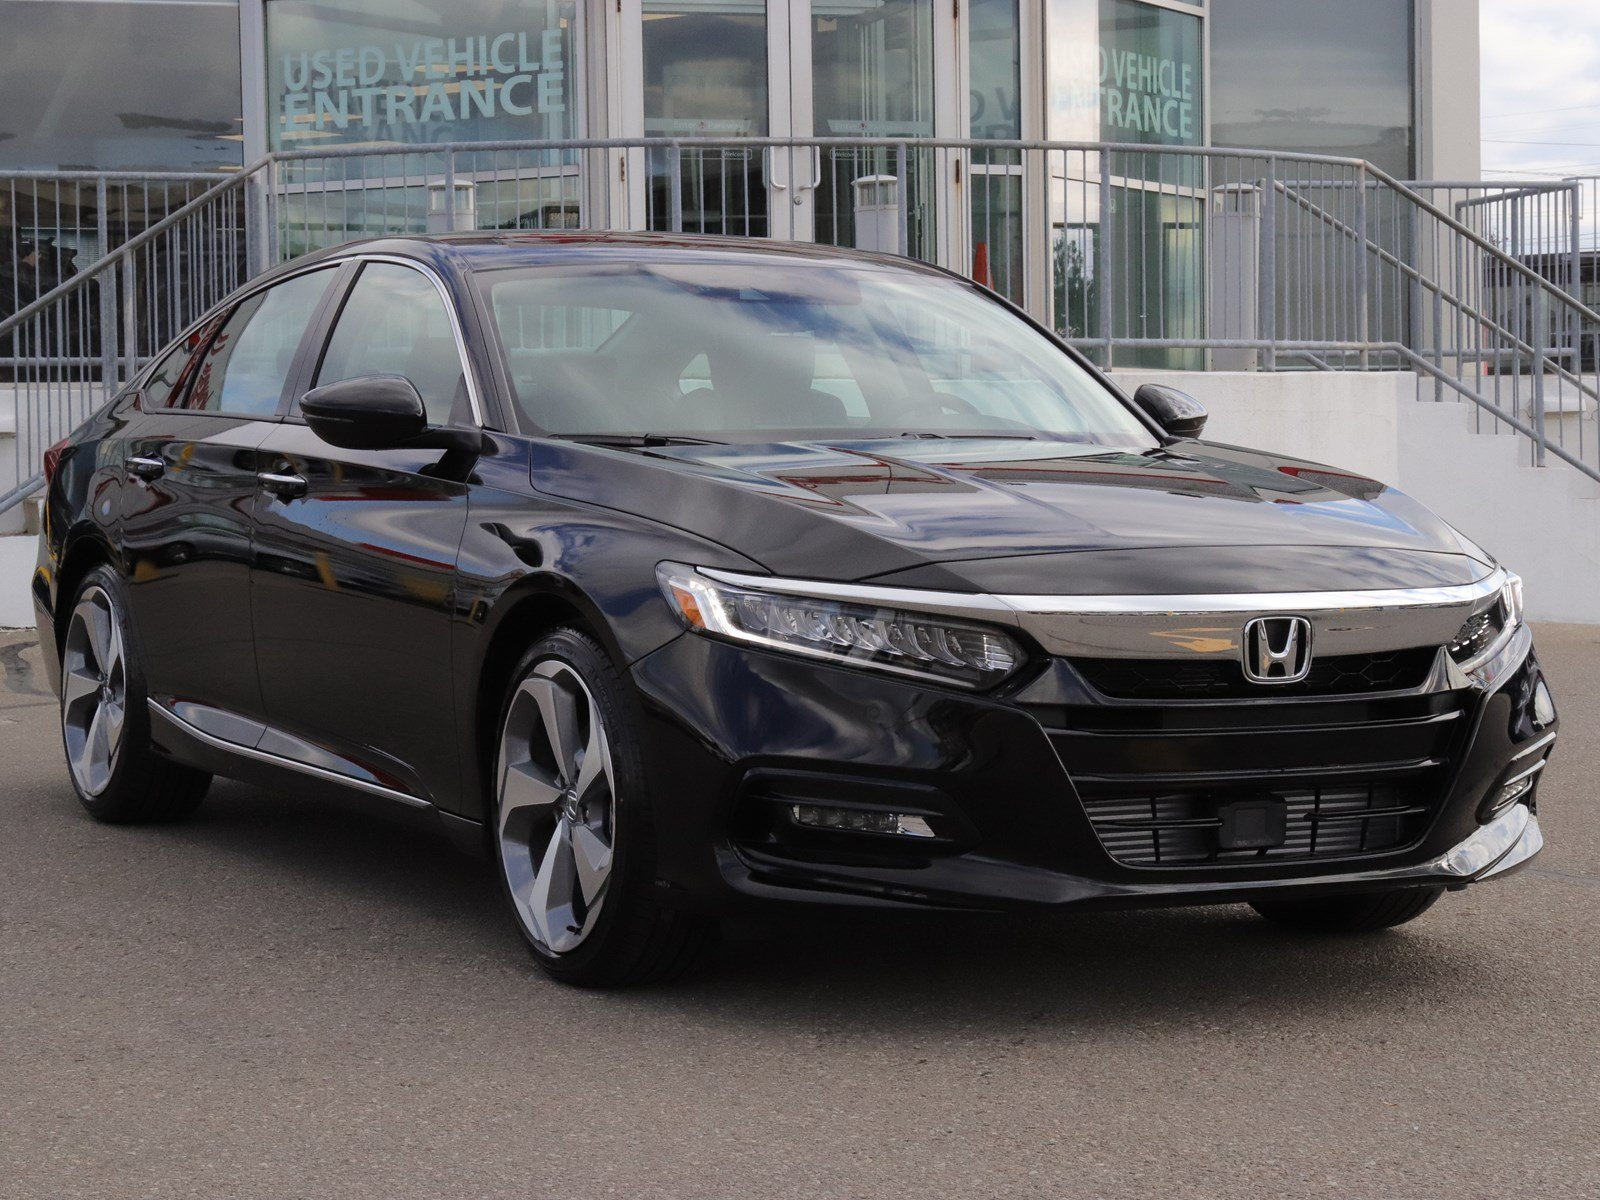 New Honda Accord >> New 2018 Honda Accord Sedan Touring - Demo - Driven by ...